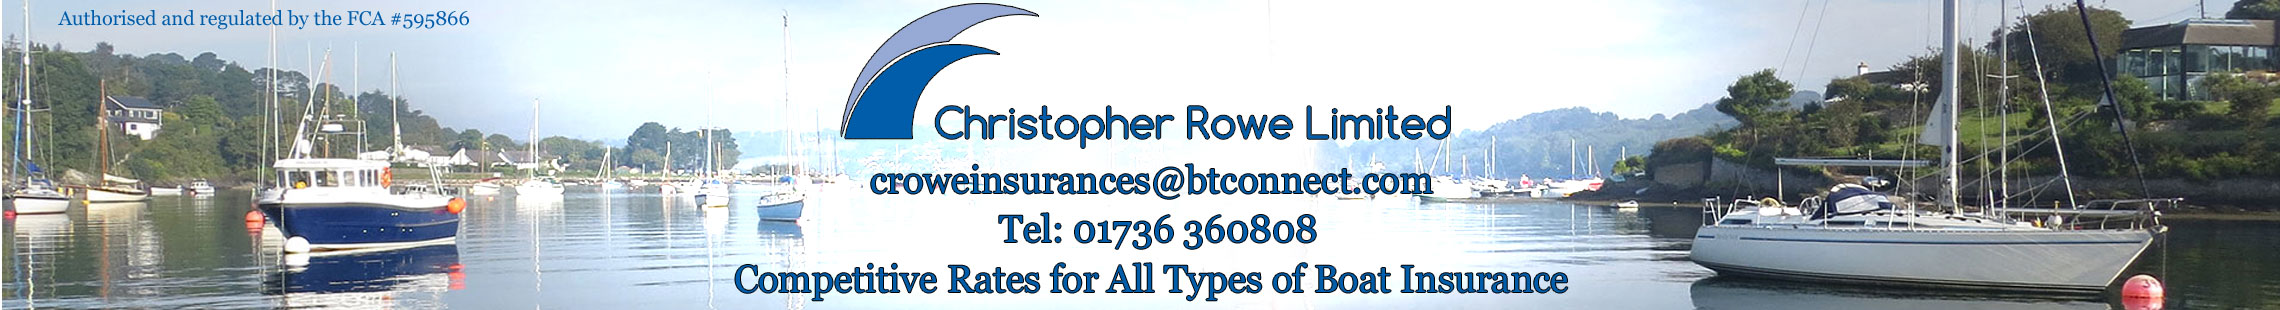 Christopher Rowe – Competitive rates for all types of boat insurance